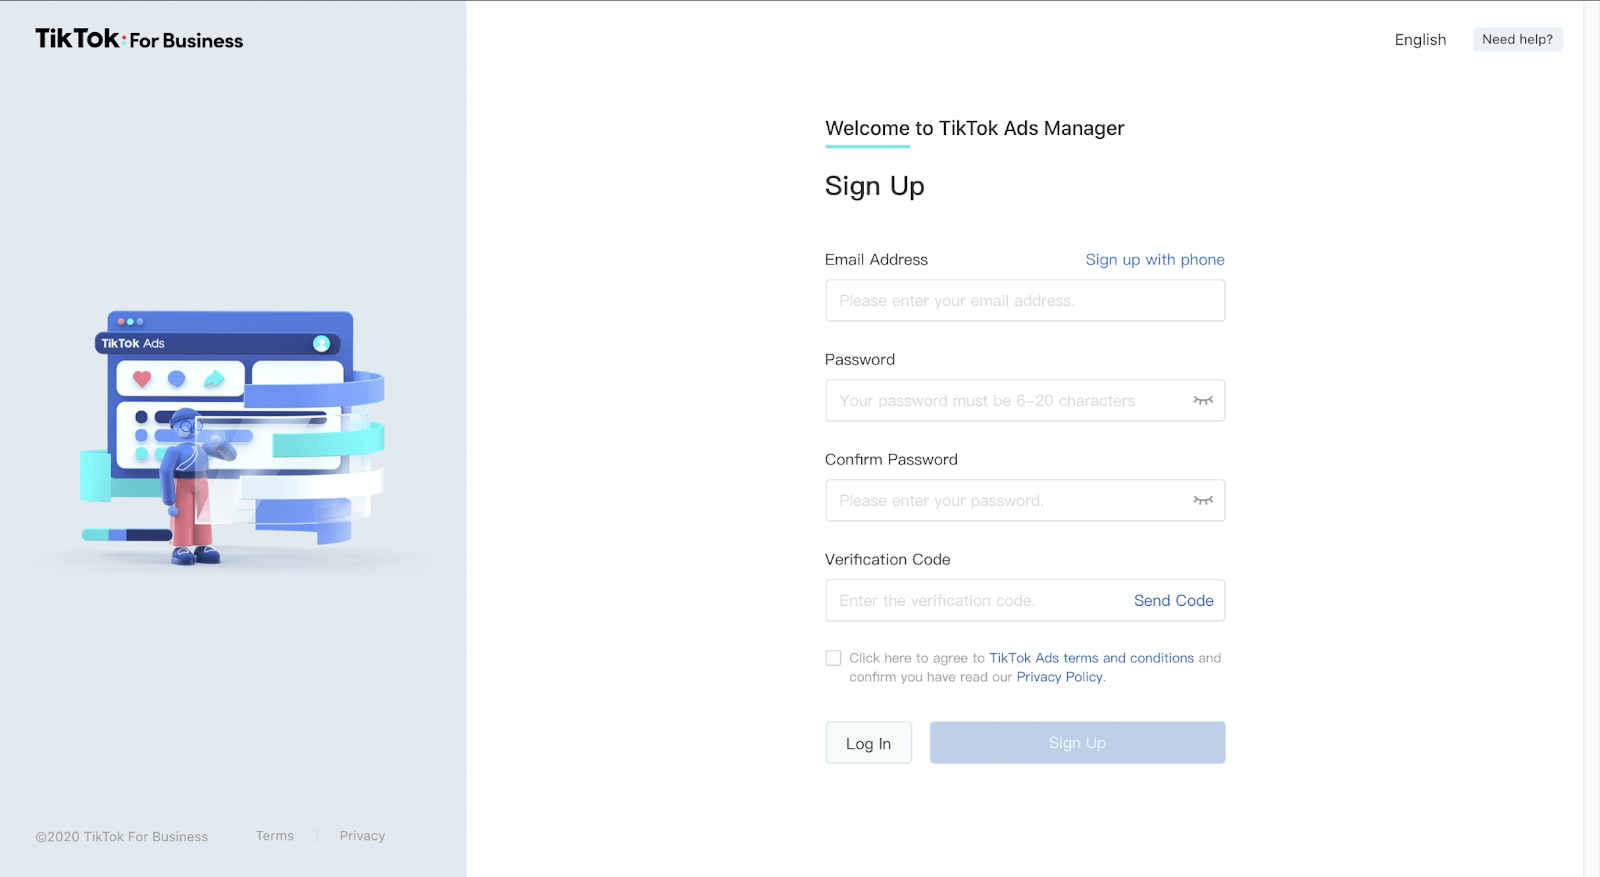 TikTok ads manager sign up page